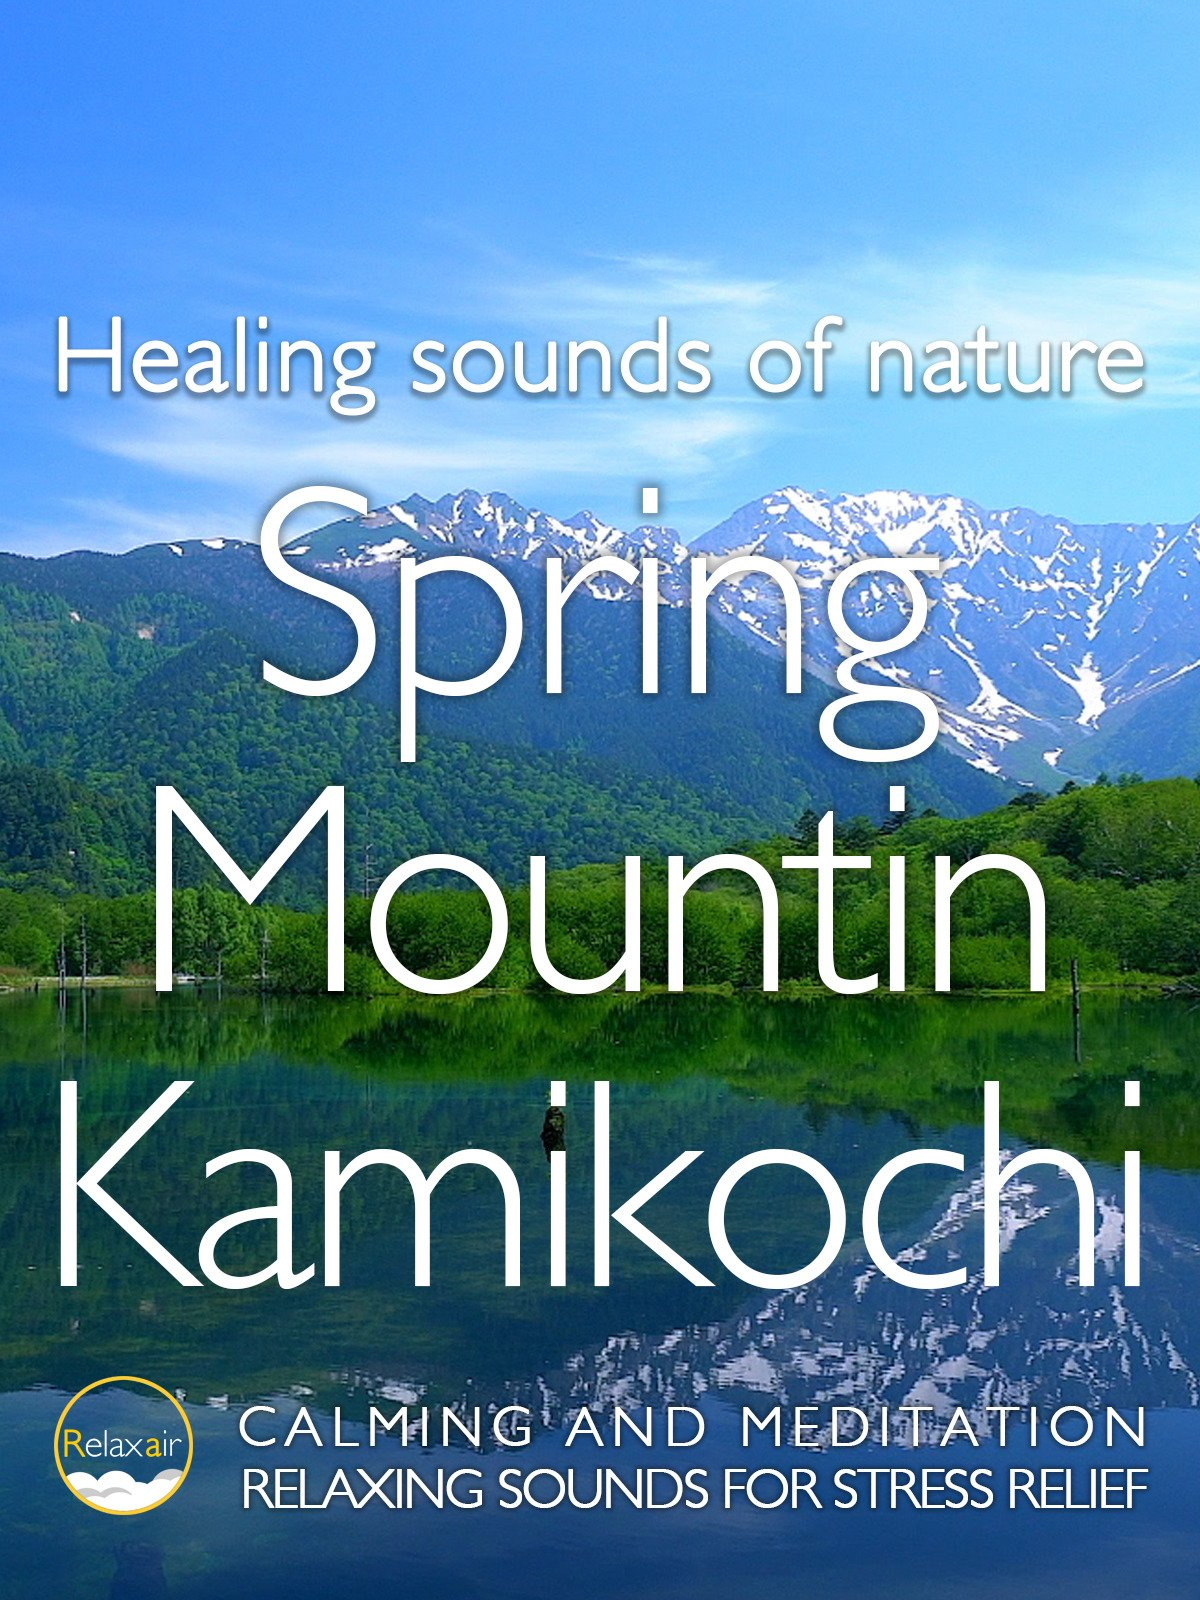 Healing Sound of Nature Spring Mountain Kamikochi Calming and Meditation Relaxing Sound for Stress relief